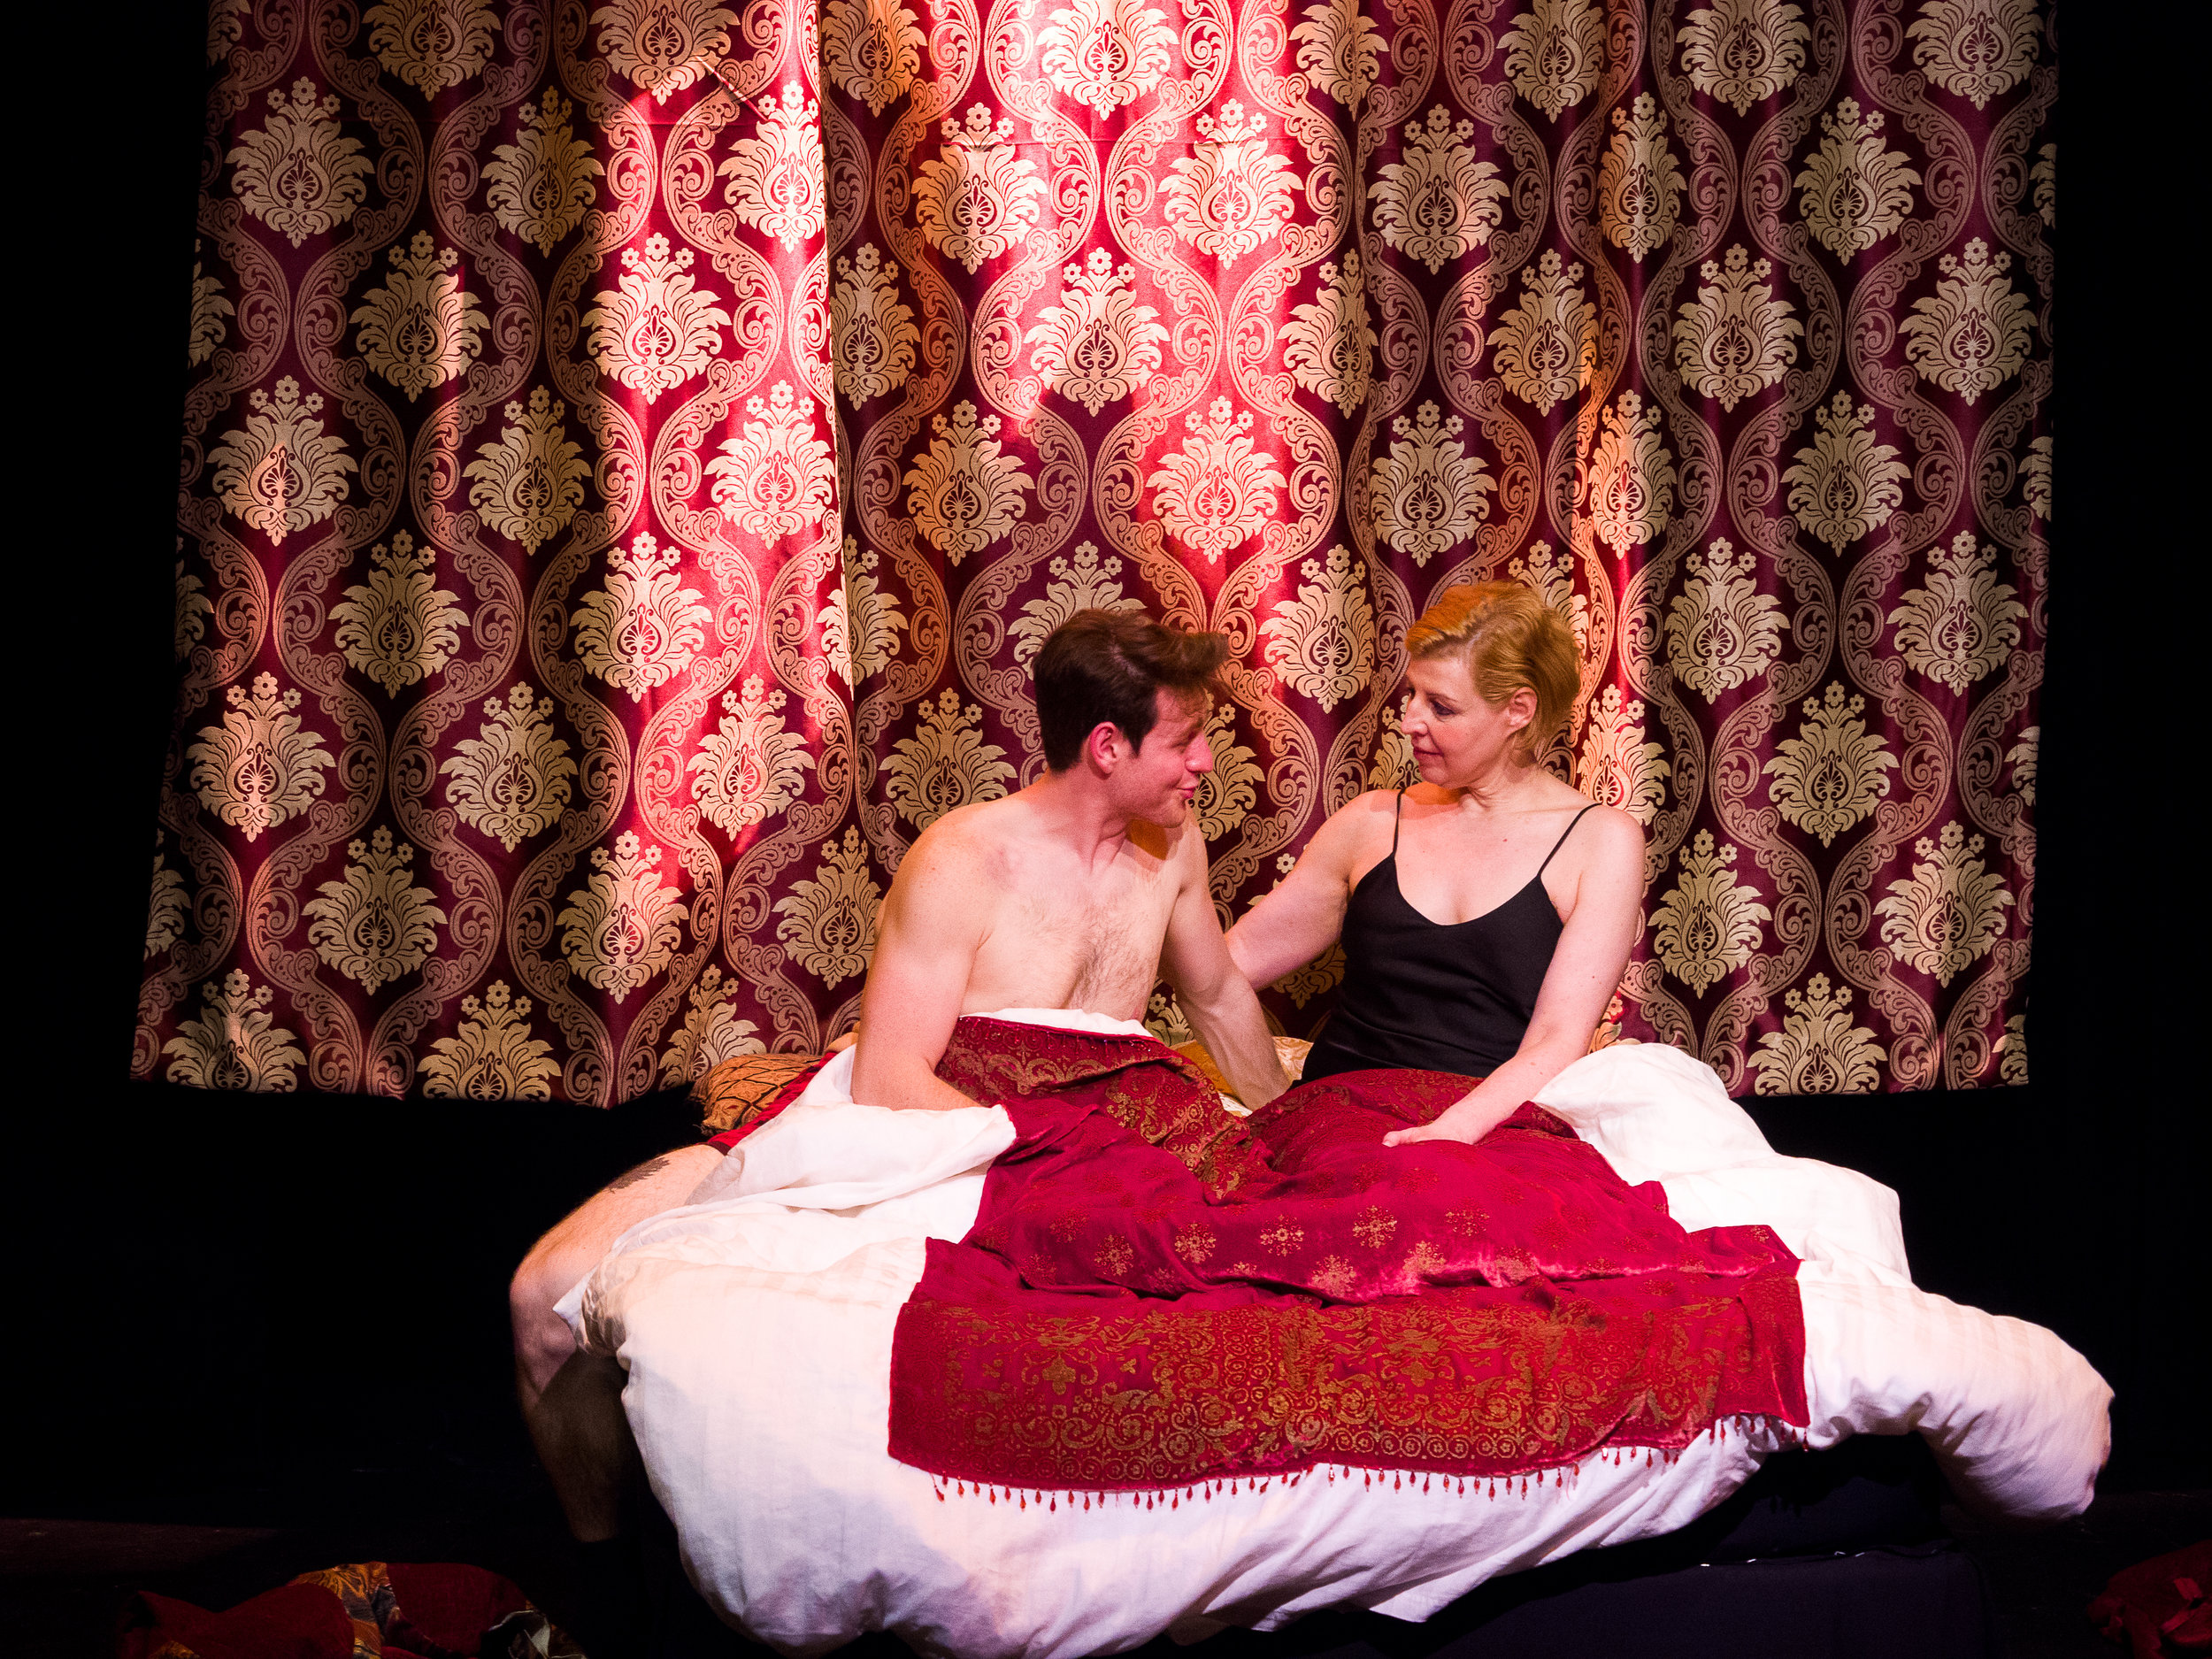 Left to Right: Dewey Stewart as Giovanni; Françoise Balthazar as Lucrezia Borgia. Set and costumes by Jan Venus; lighting design by Waleed Ansari. Photography by Rene Stakenborg.